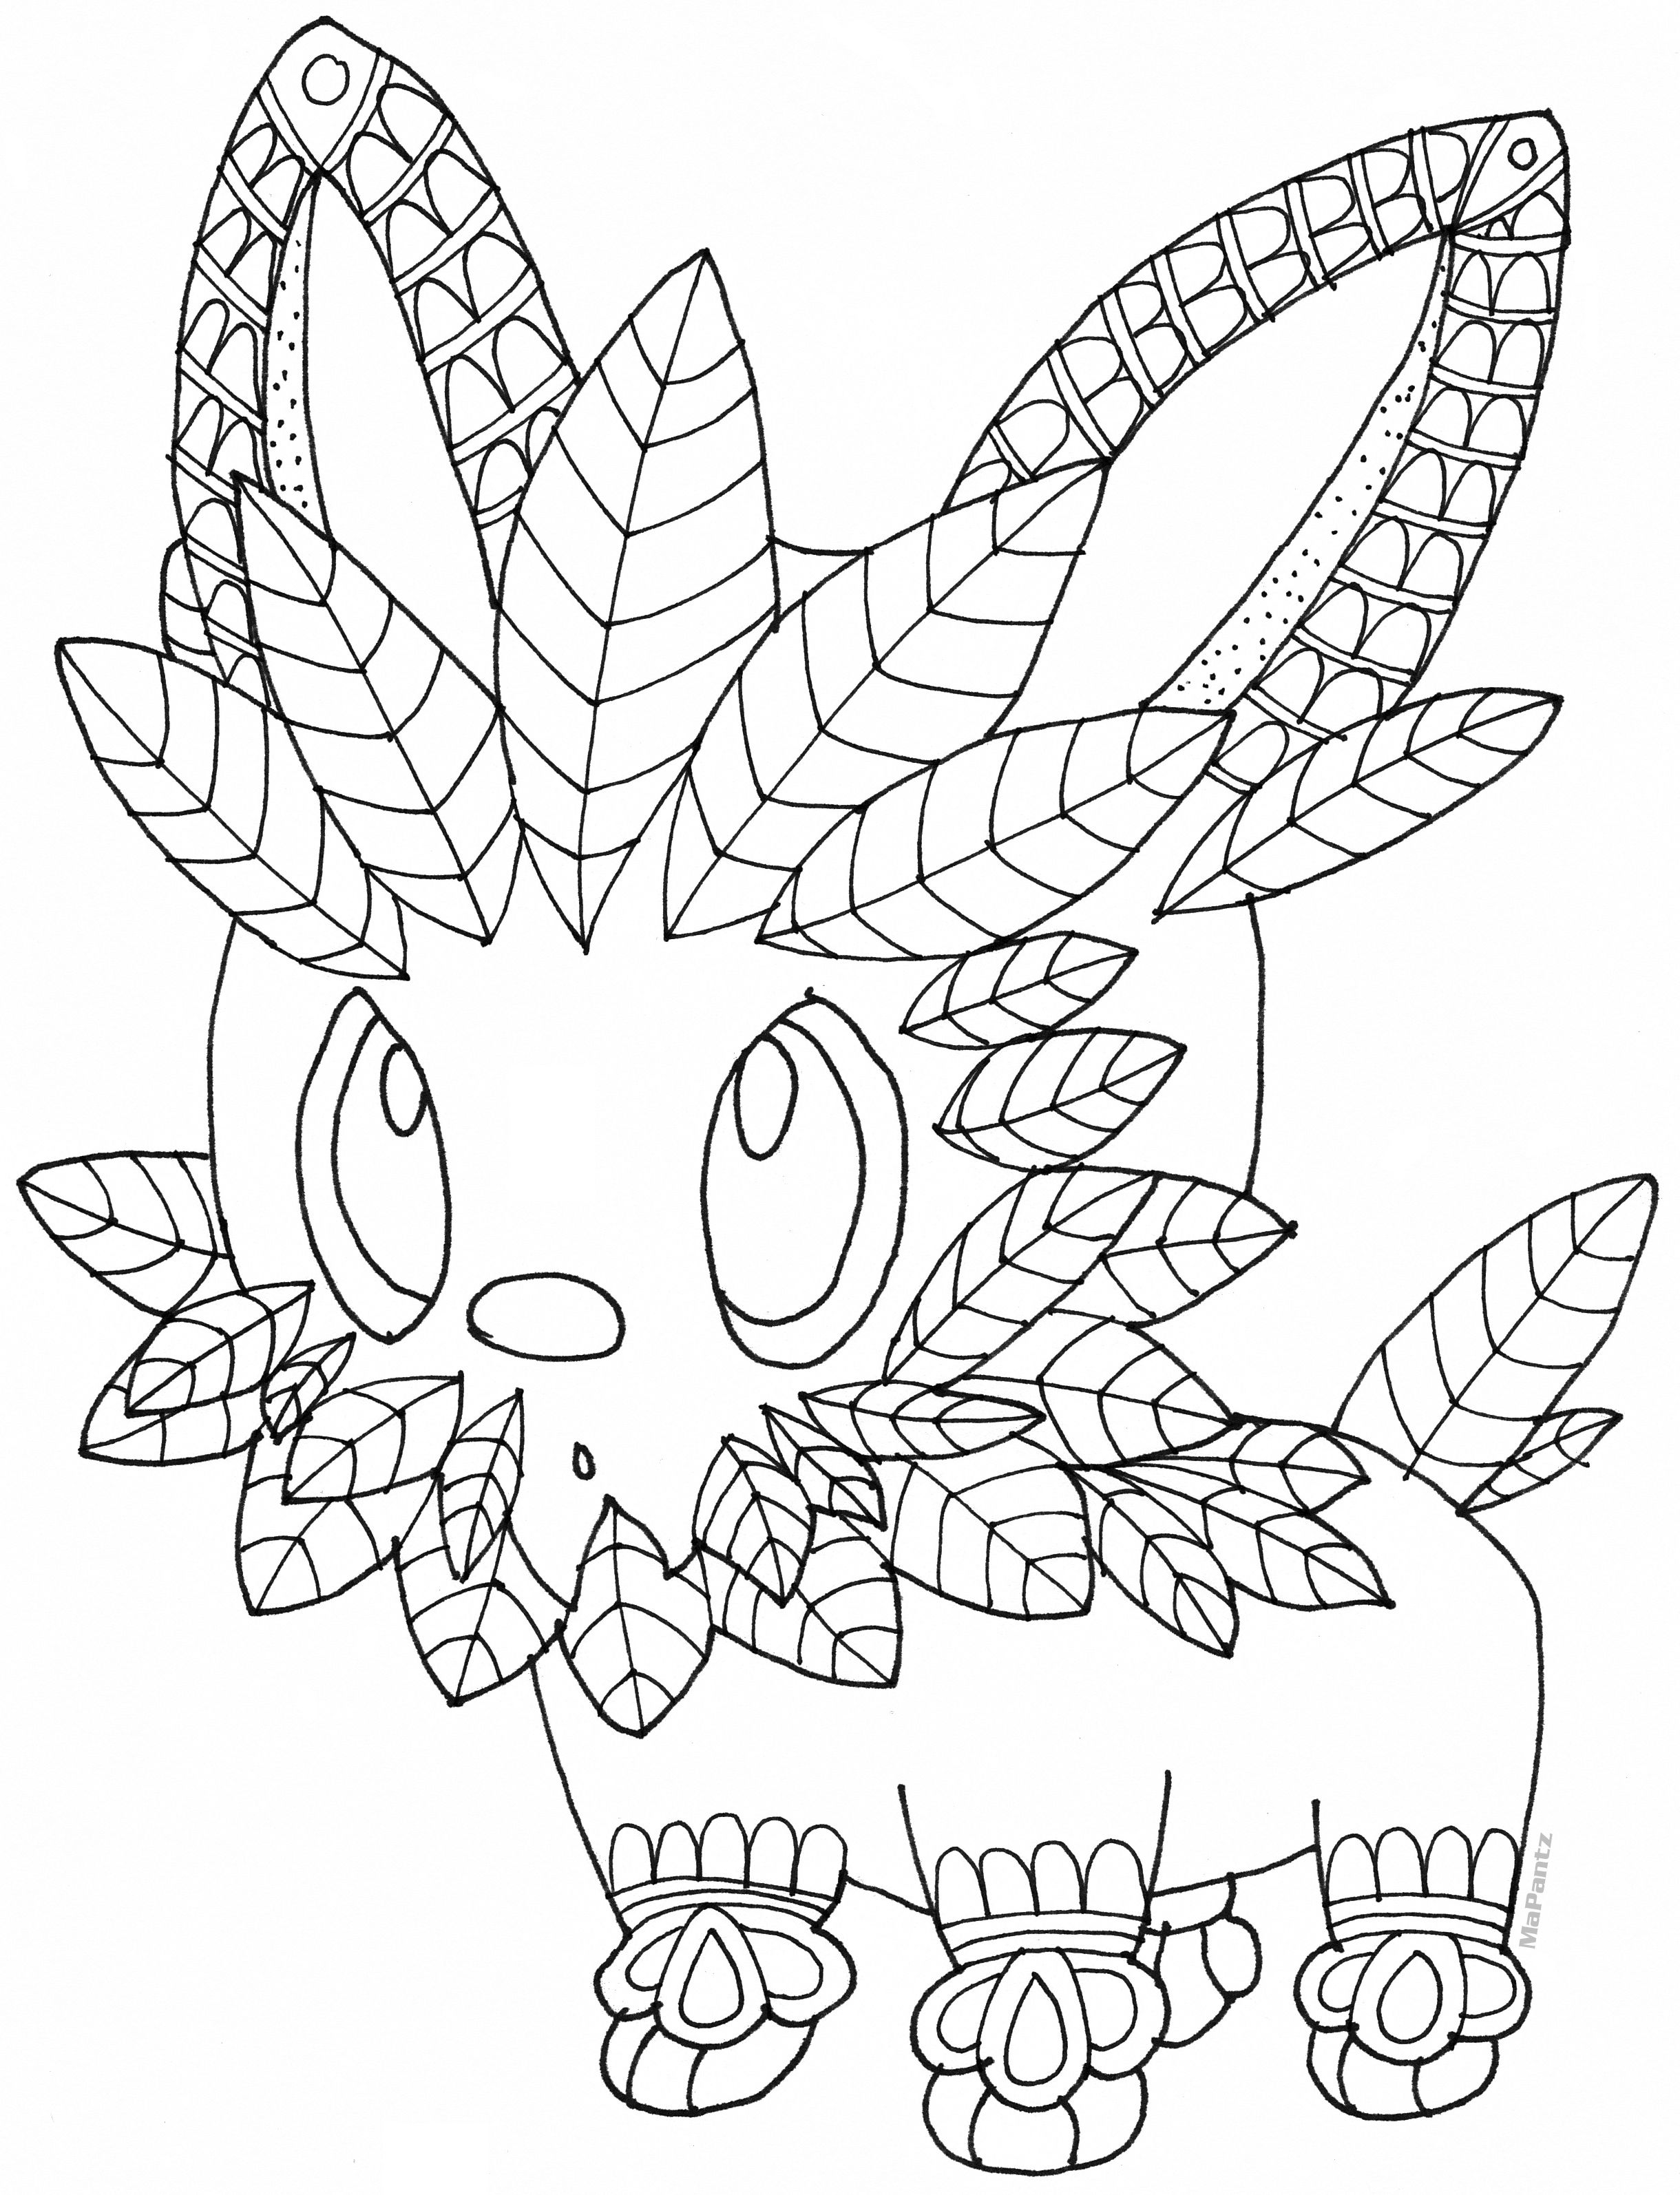 Pokemon Lillipup Free Coloring Page by MaPantz | stoutland | Pinterest